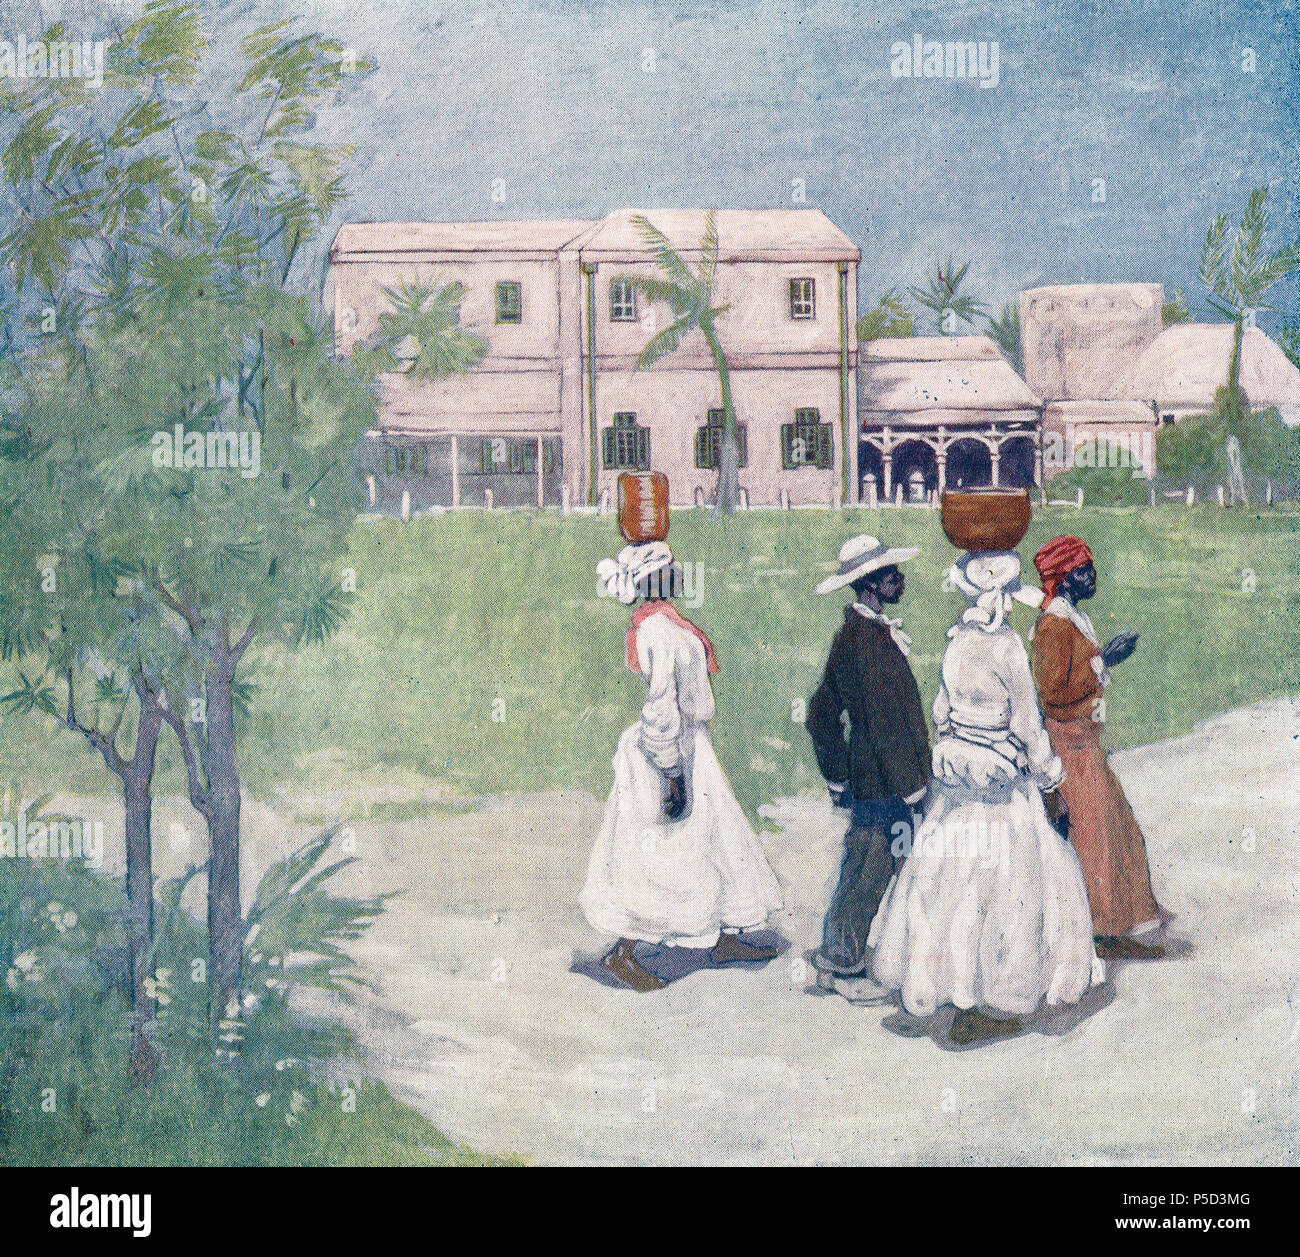 Going to work in Barbados, late 19th early 20th century - Stock Image